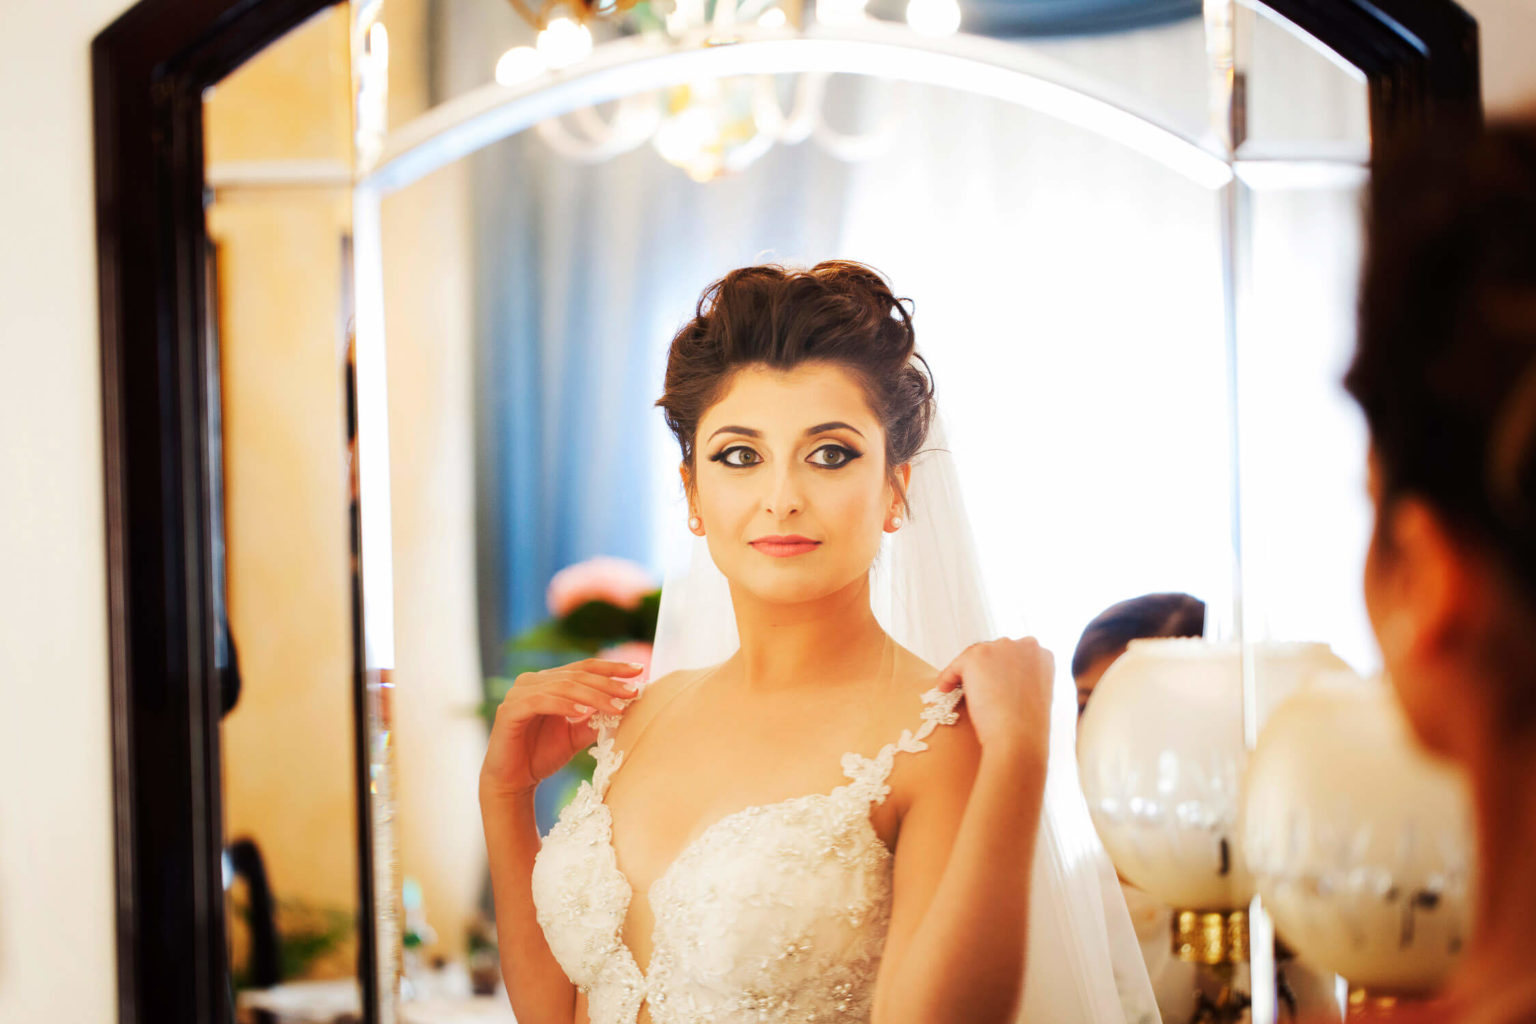 The bride ready at home in Siculiana, photos for weddings by Nino Lombardo